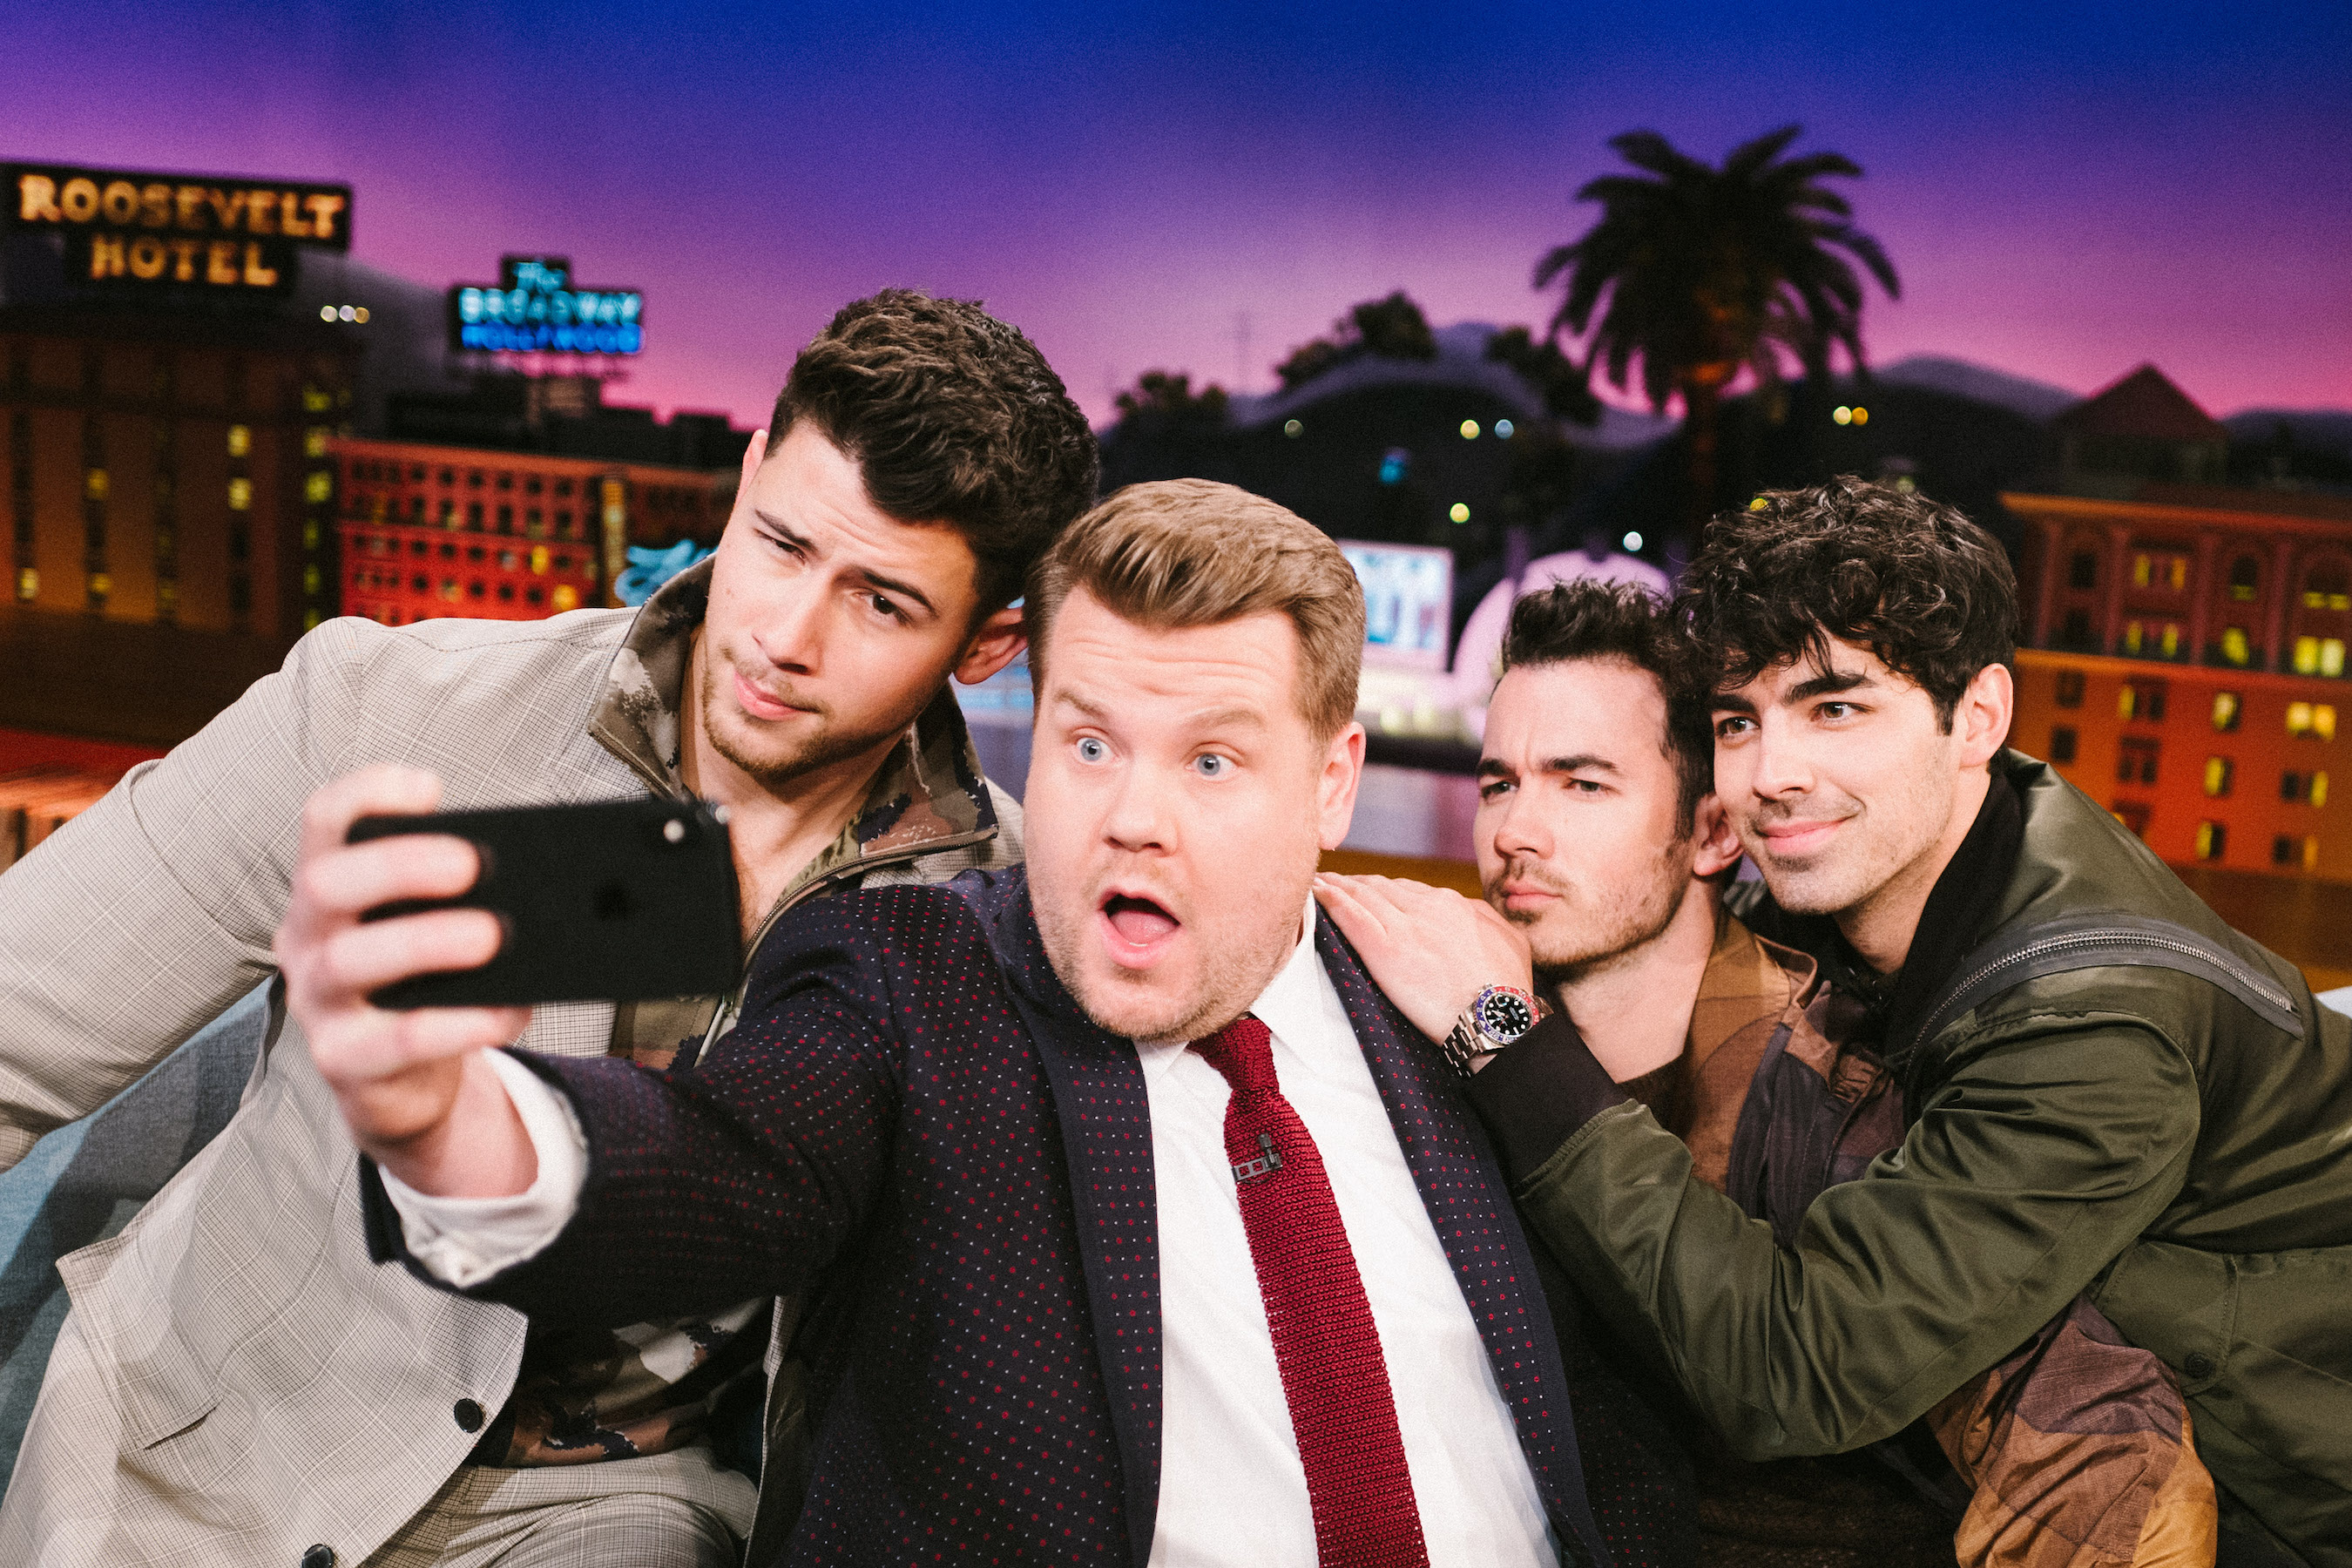 The Jonas Selfie